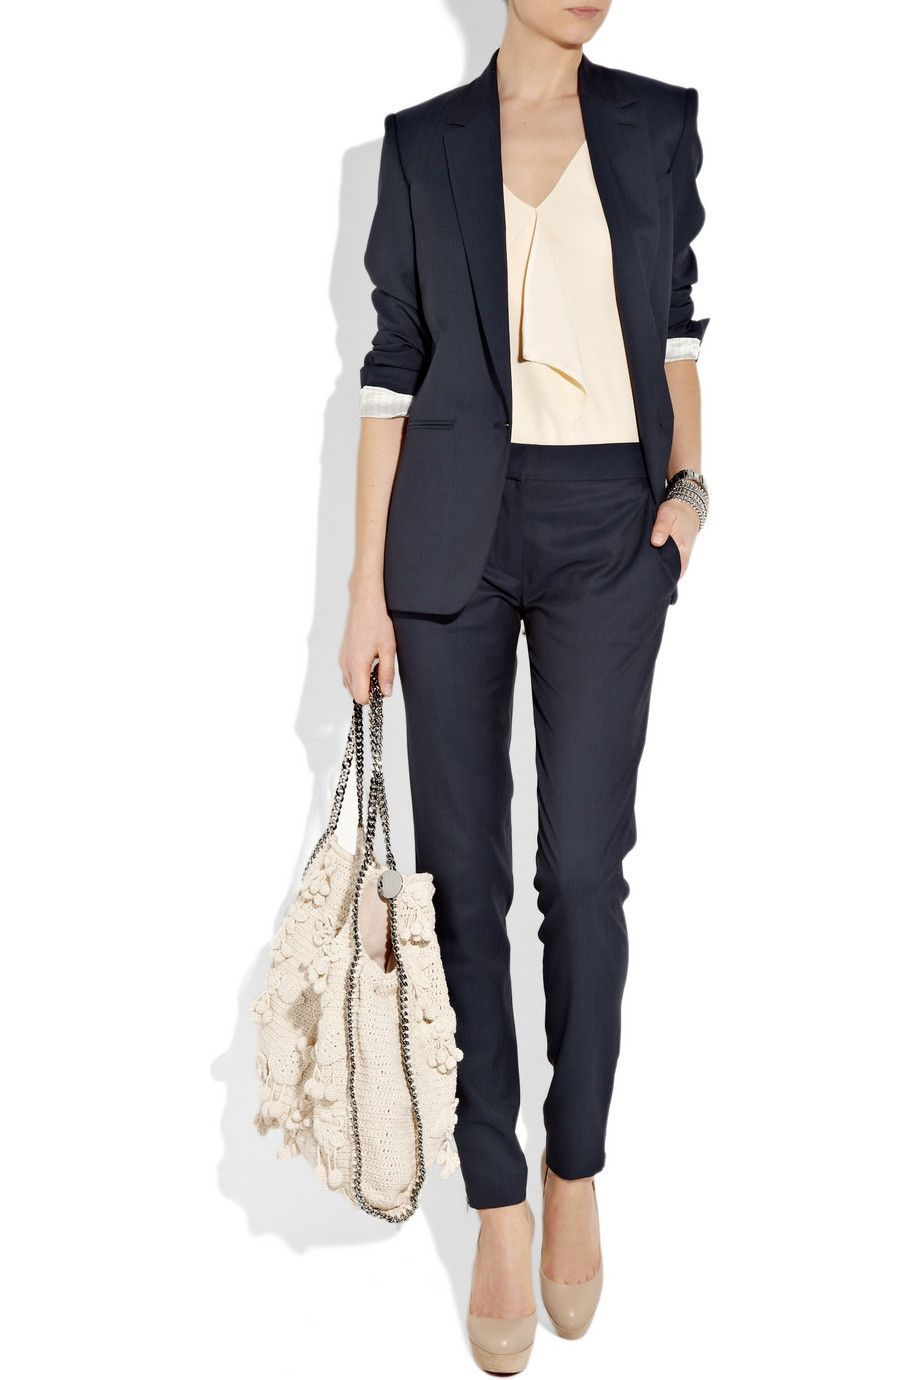 Wow power dressing 2011 style fashion pinterest corporate attire power dressing and - Stella mccartney head office ...